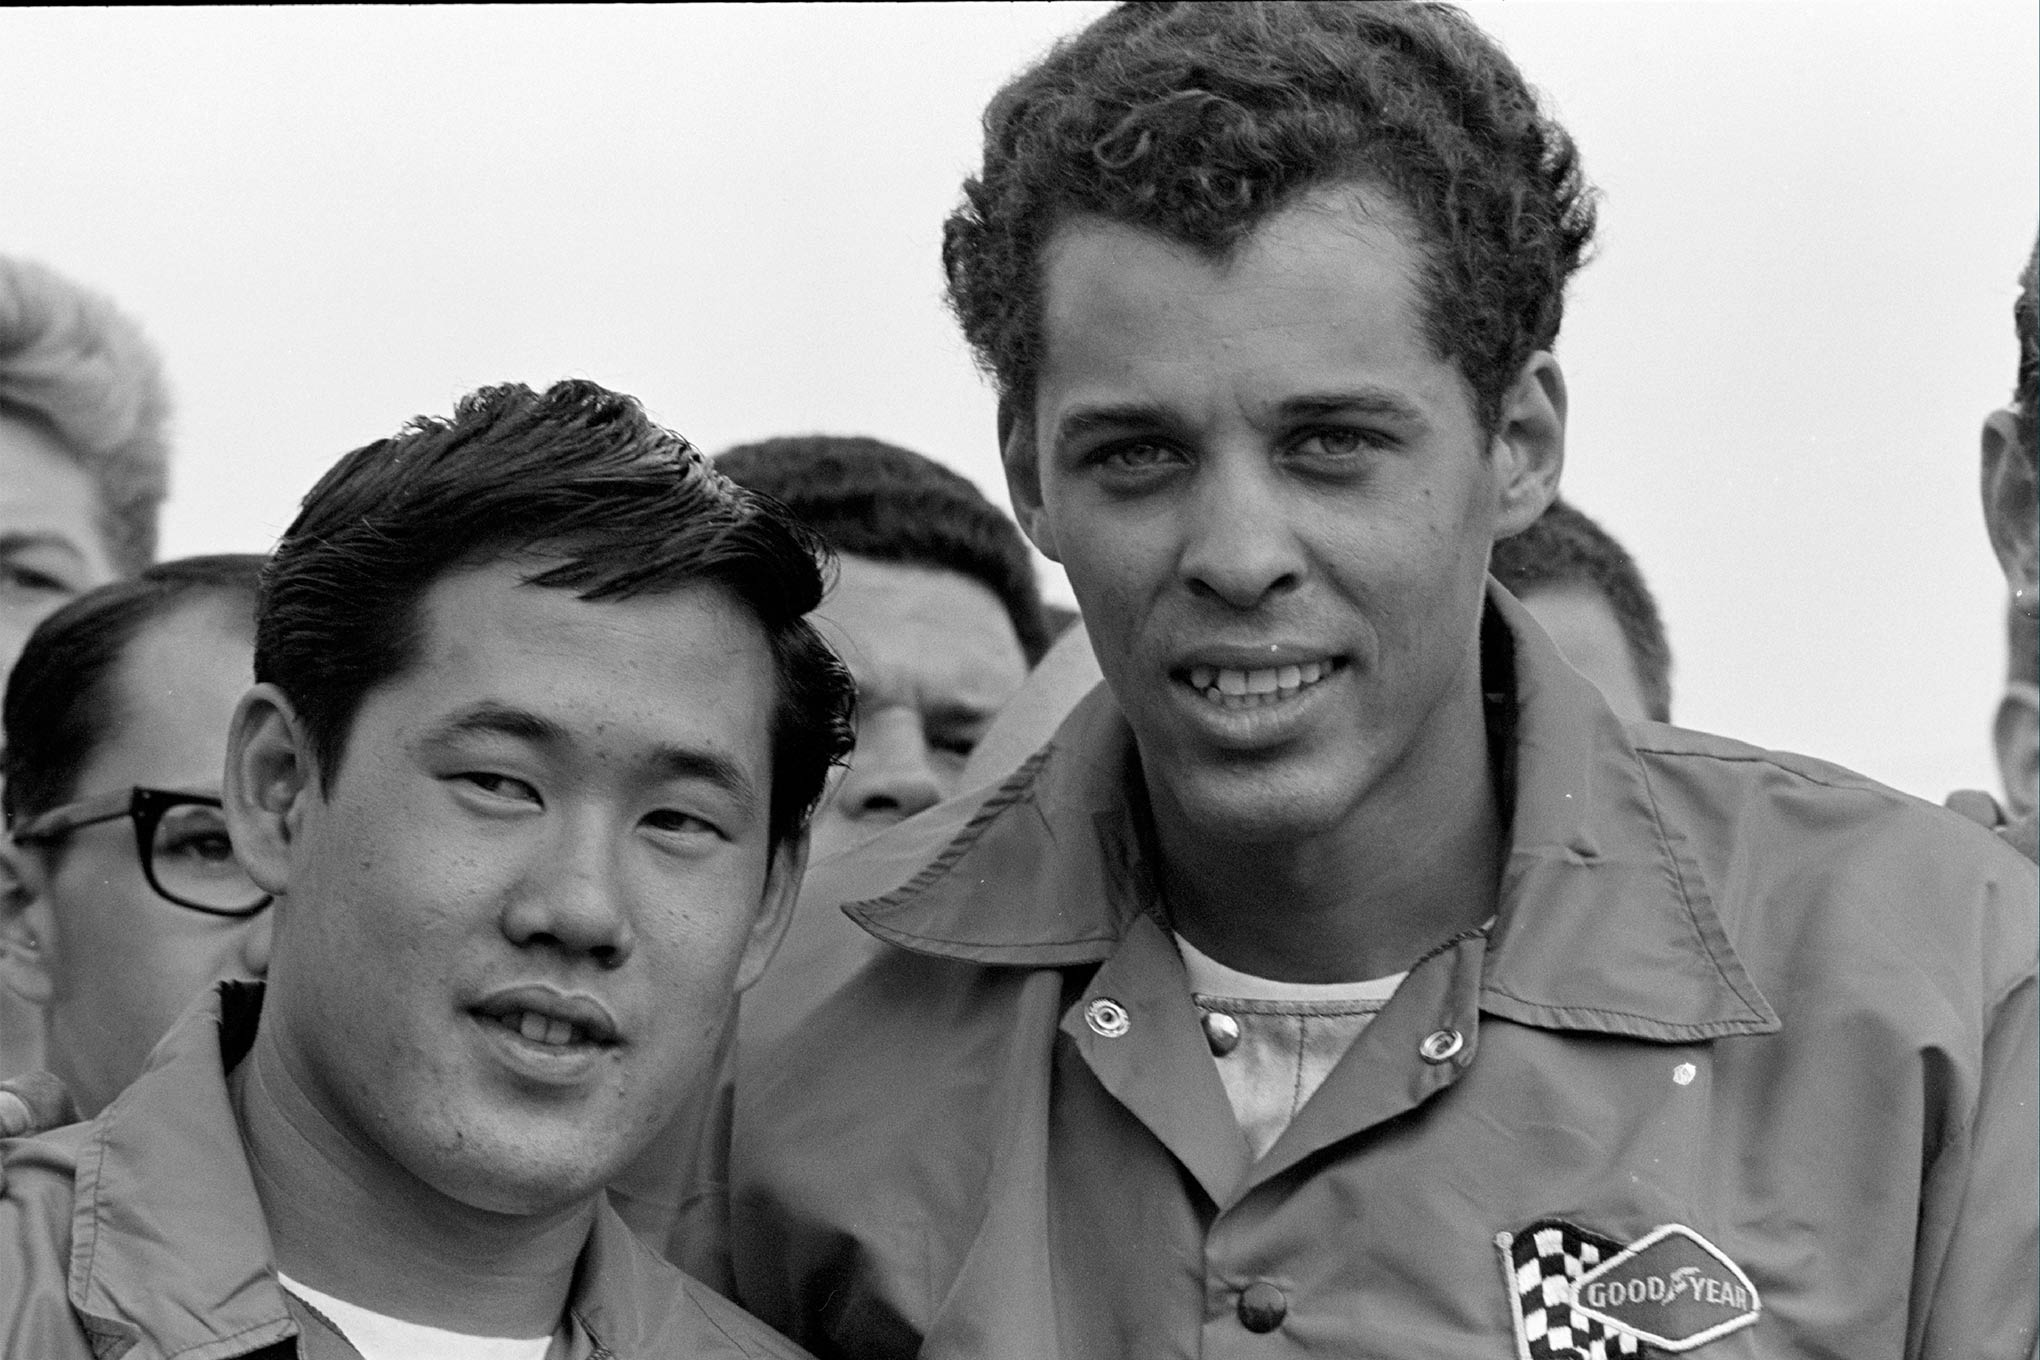 Leong and Prudhomme between rounds at the 1965 NHRA Nationals at Indianapolis.